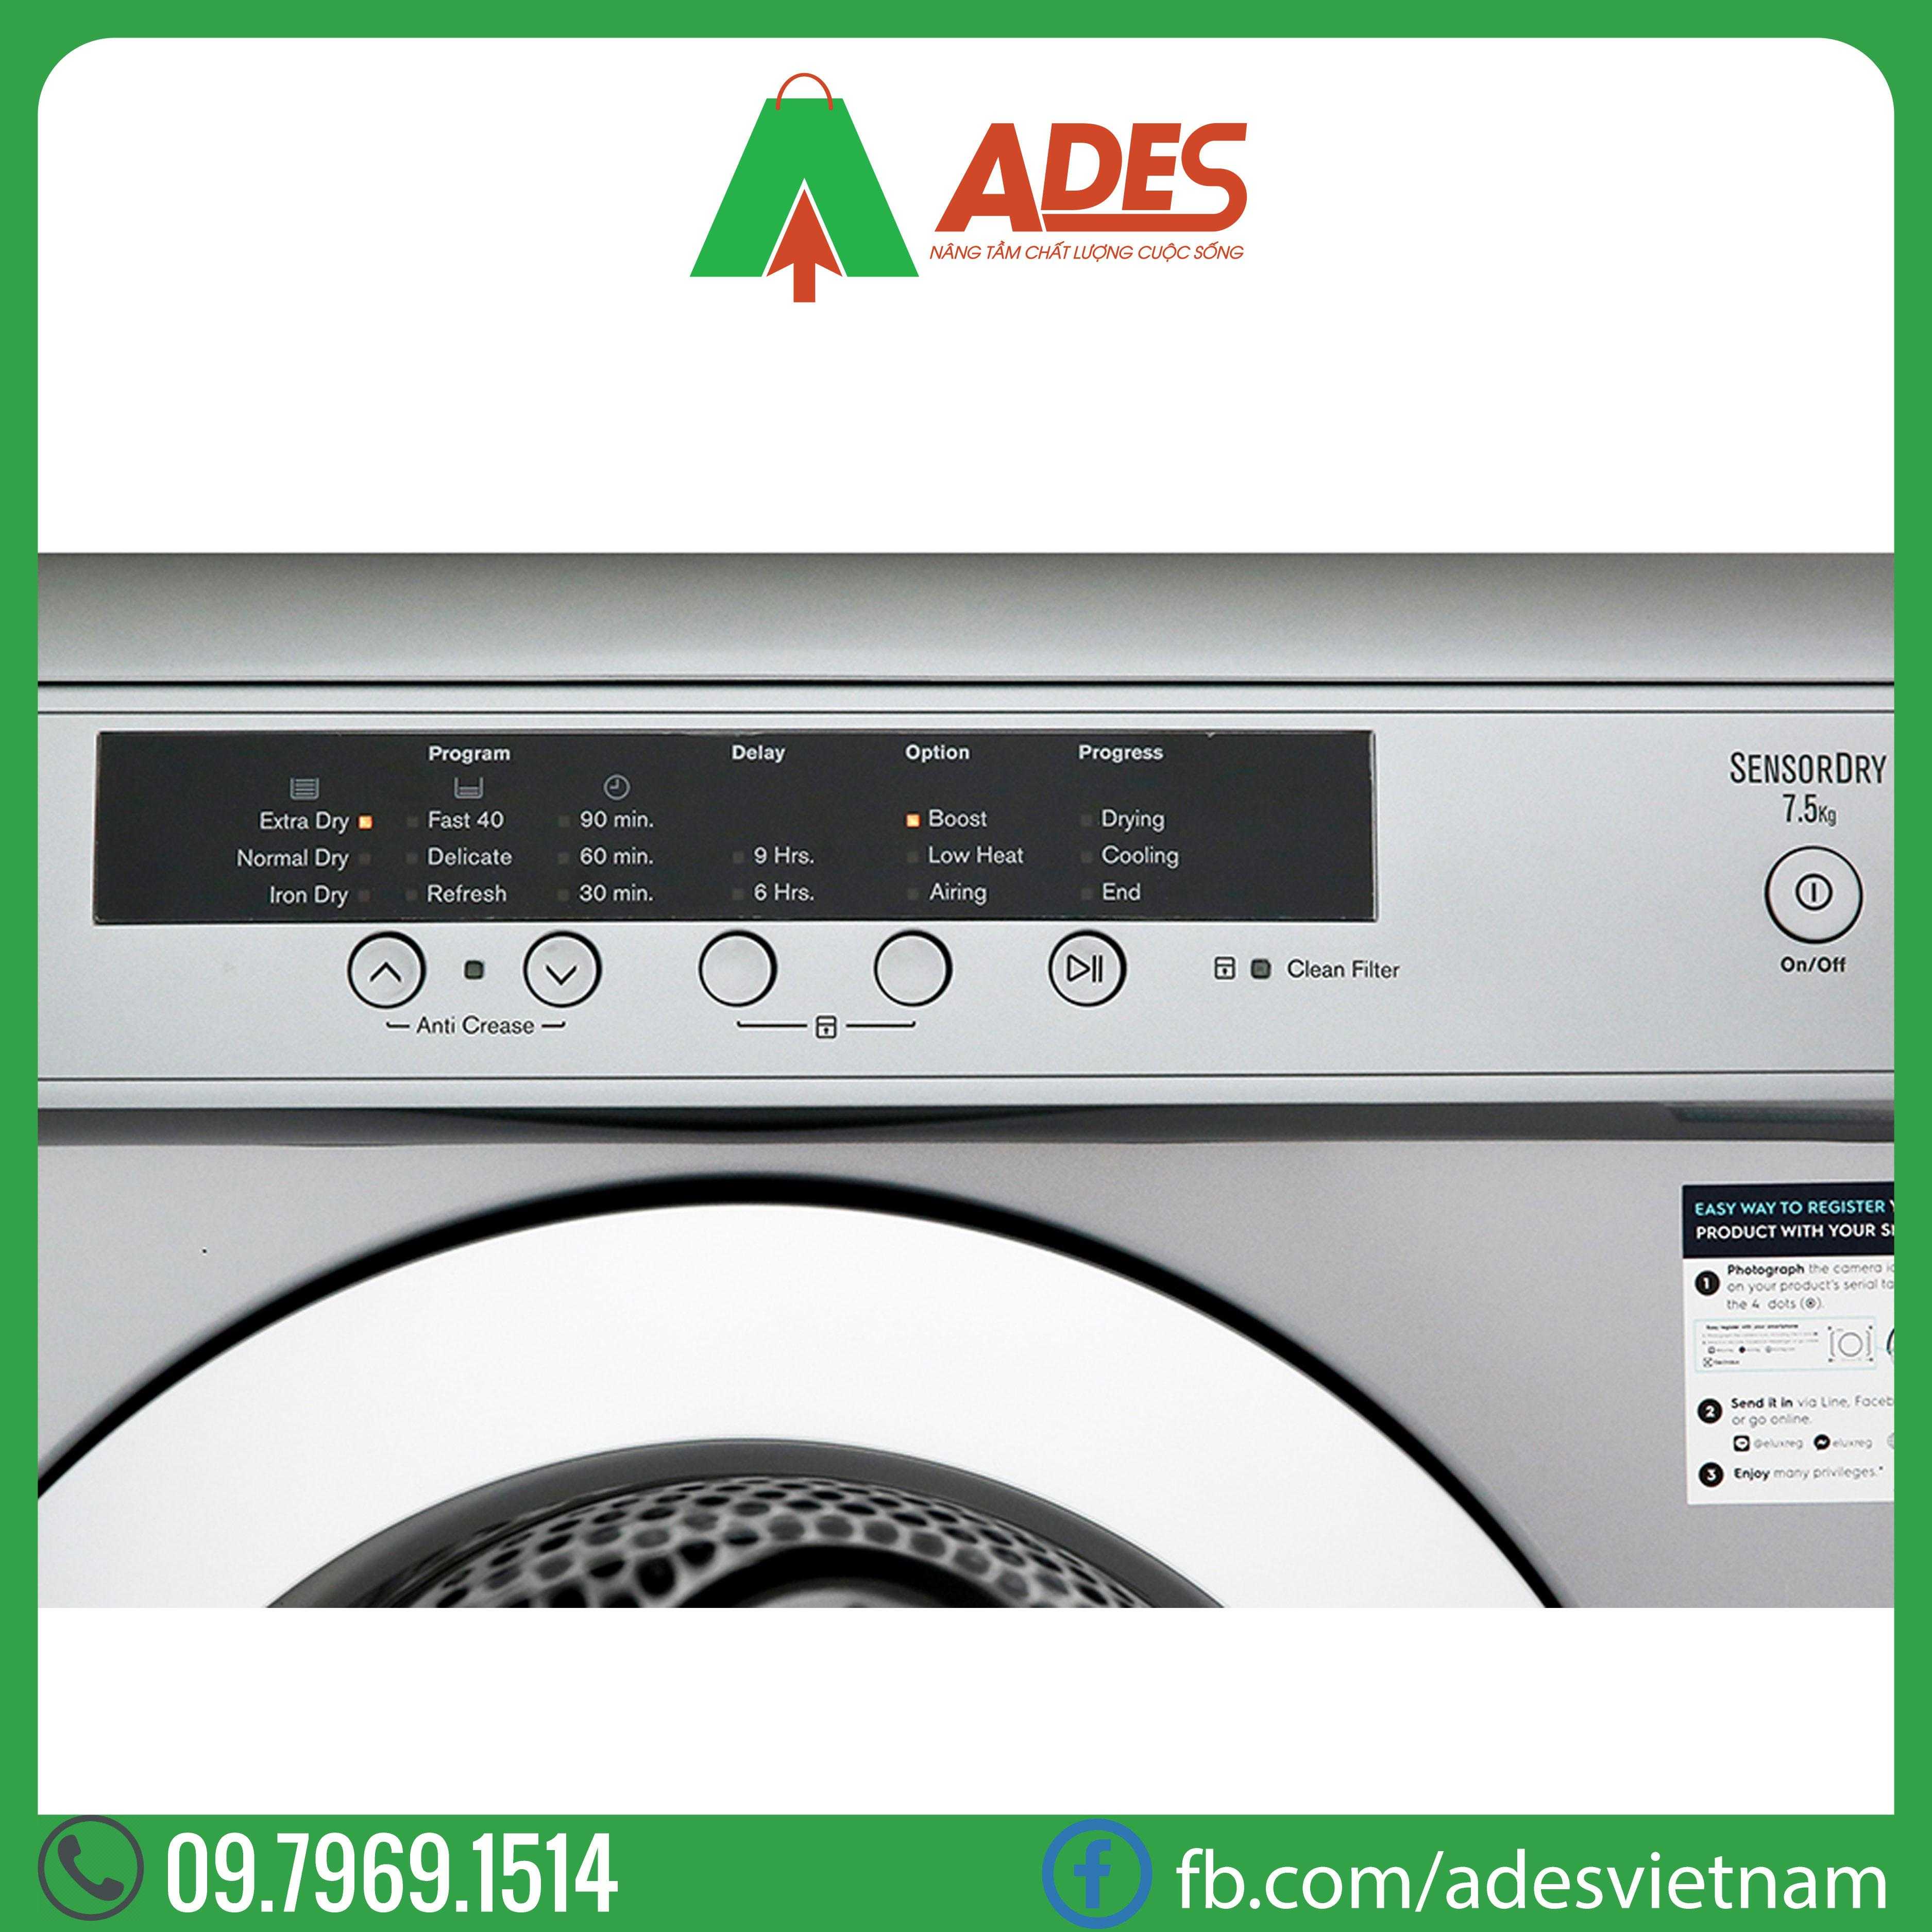 May say Electrolux EDV7552S